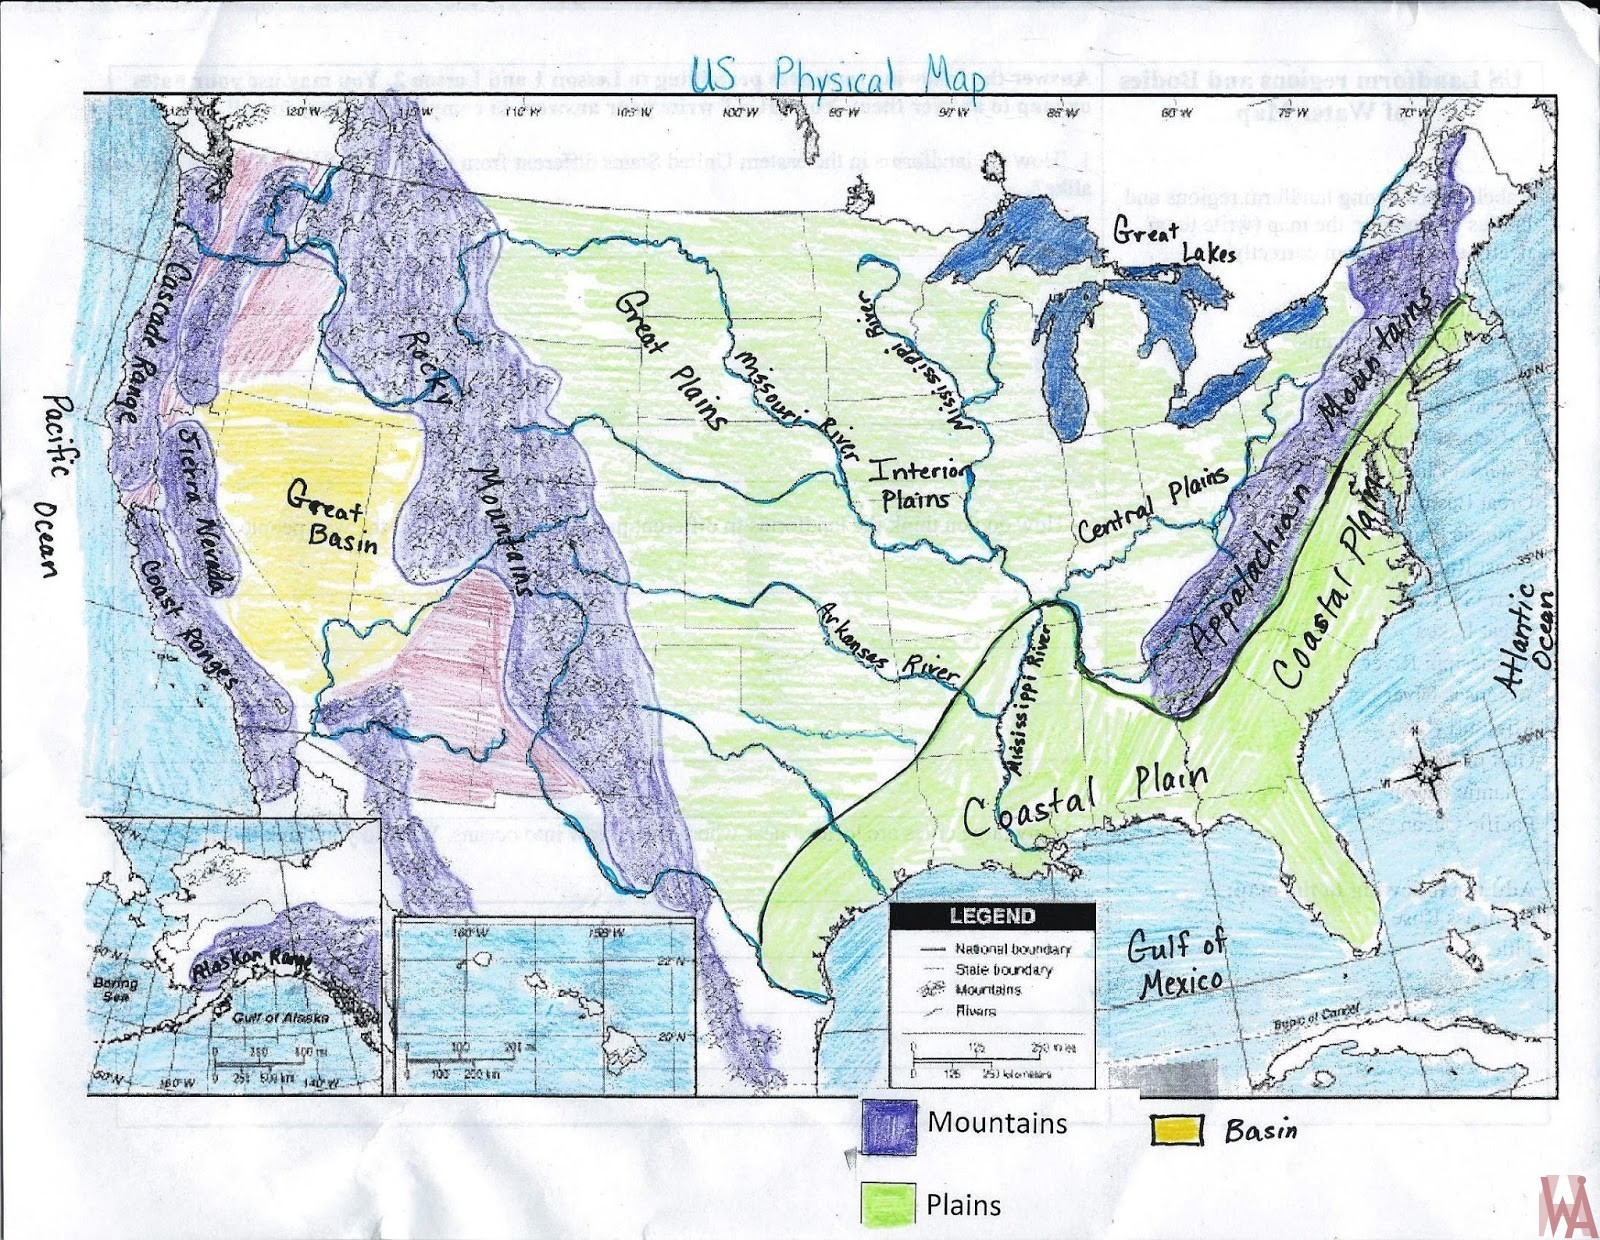 Full hand made United States rivers, lakes, water flows, mountain and basin map